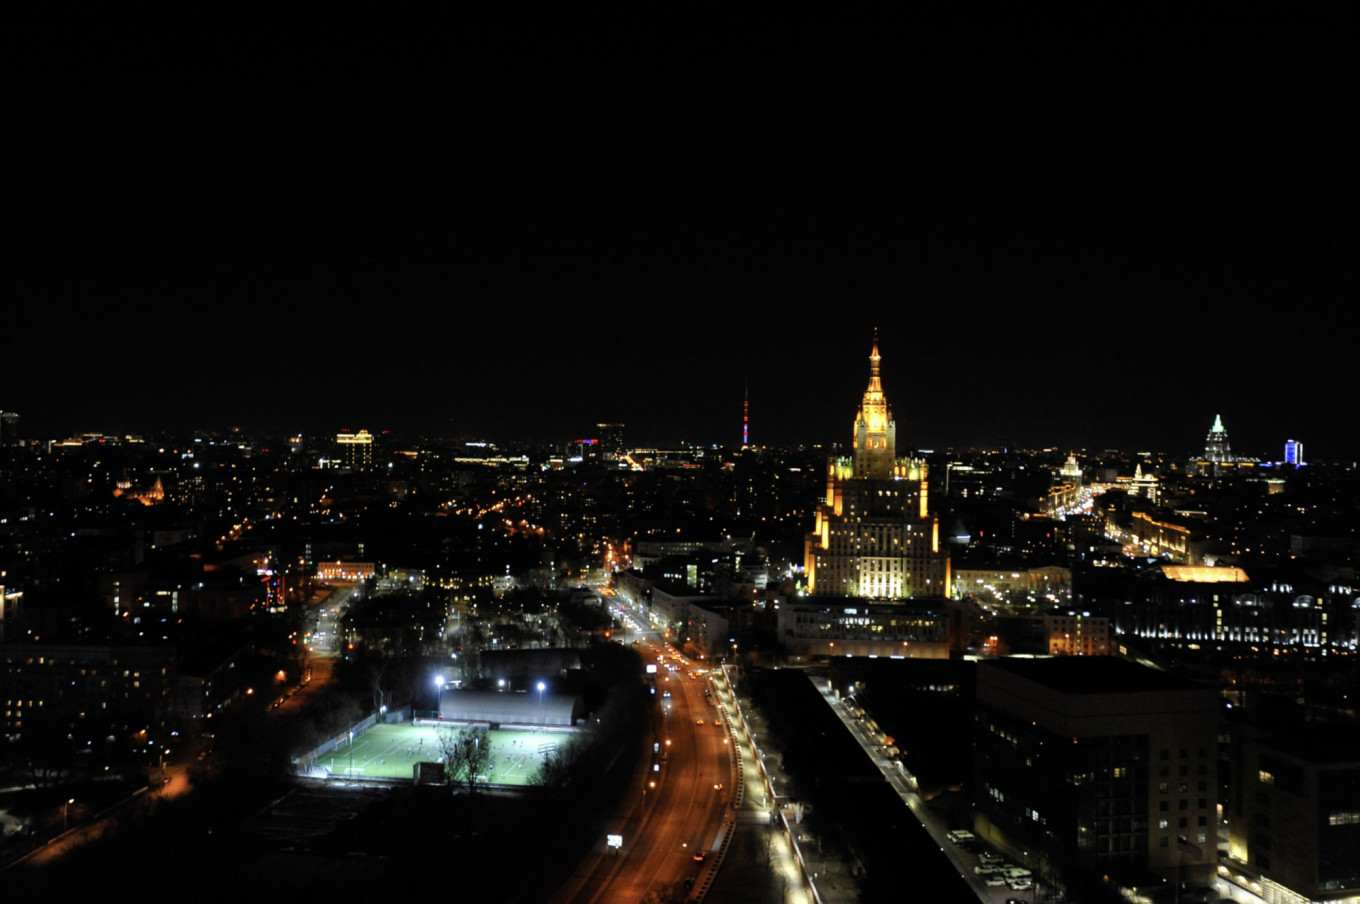 Moscow's Landmarks Go Dark for Earth Hour - The Moscow Times